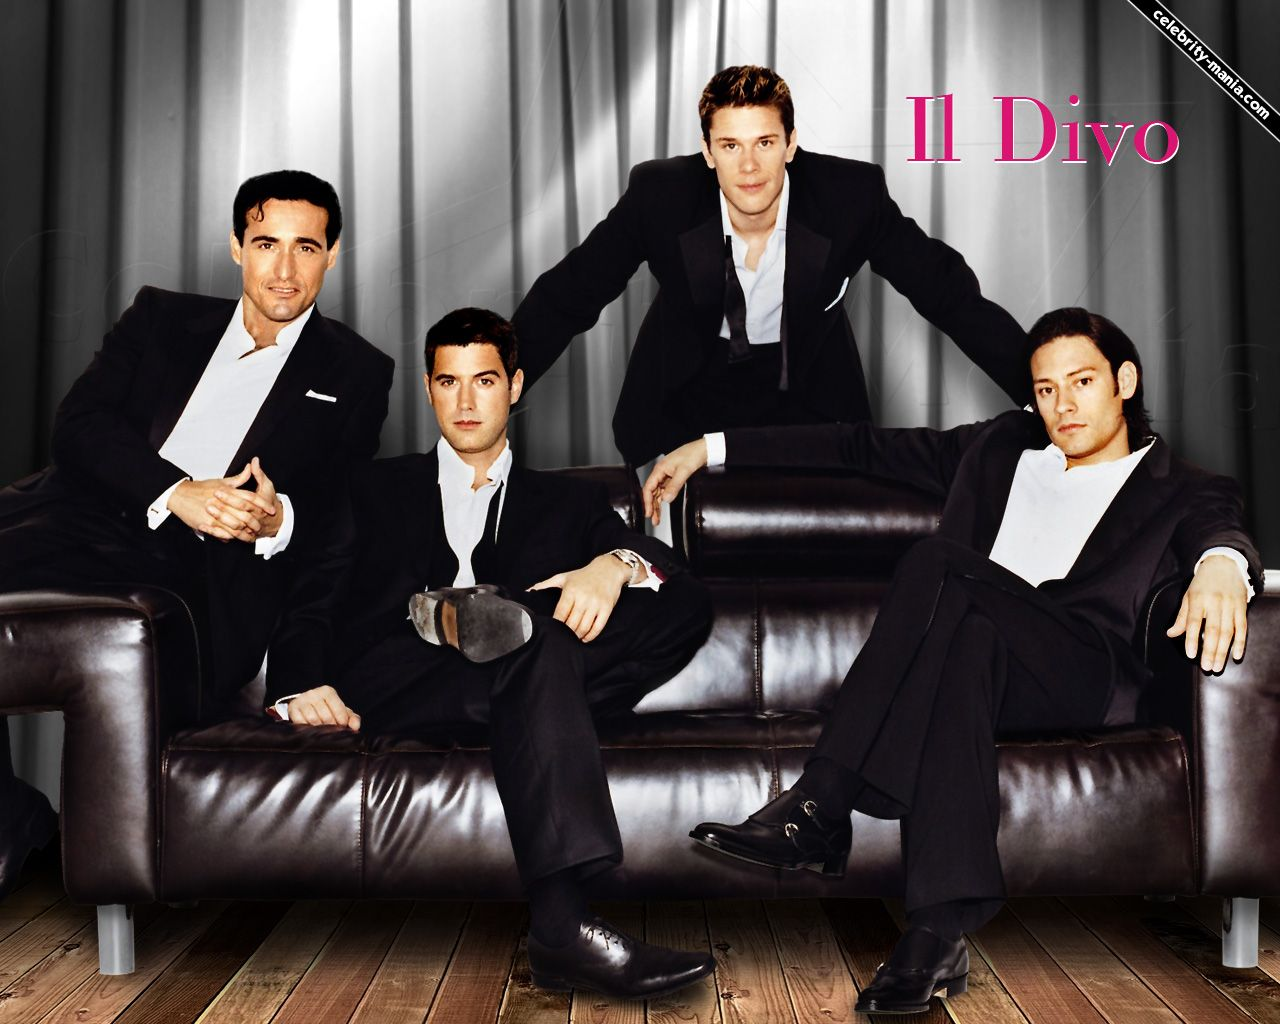 Il Divo I Believe In You Music Wallpaper Bmg Music Music